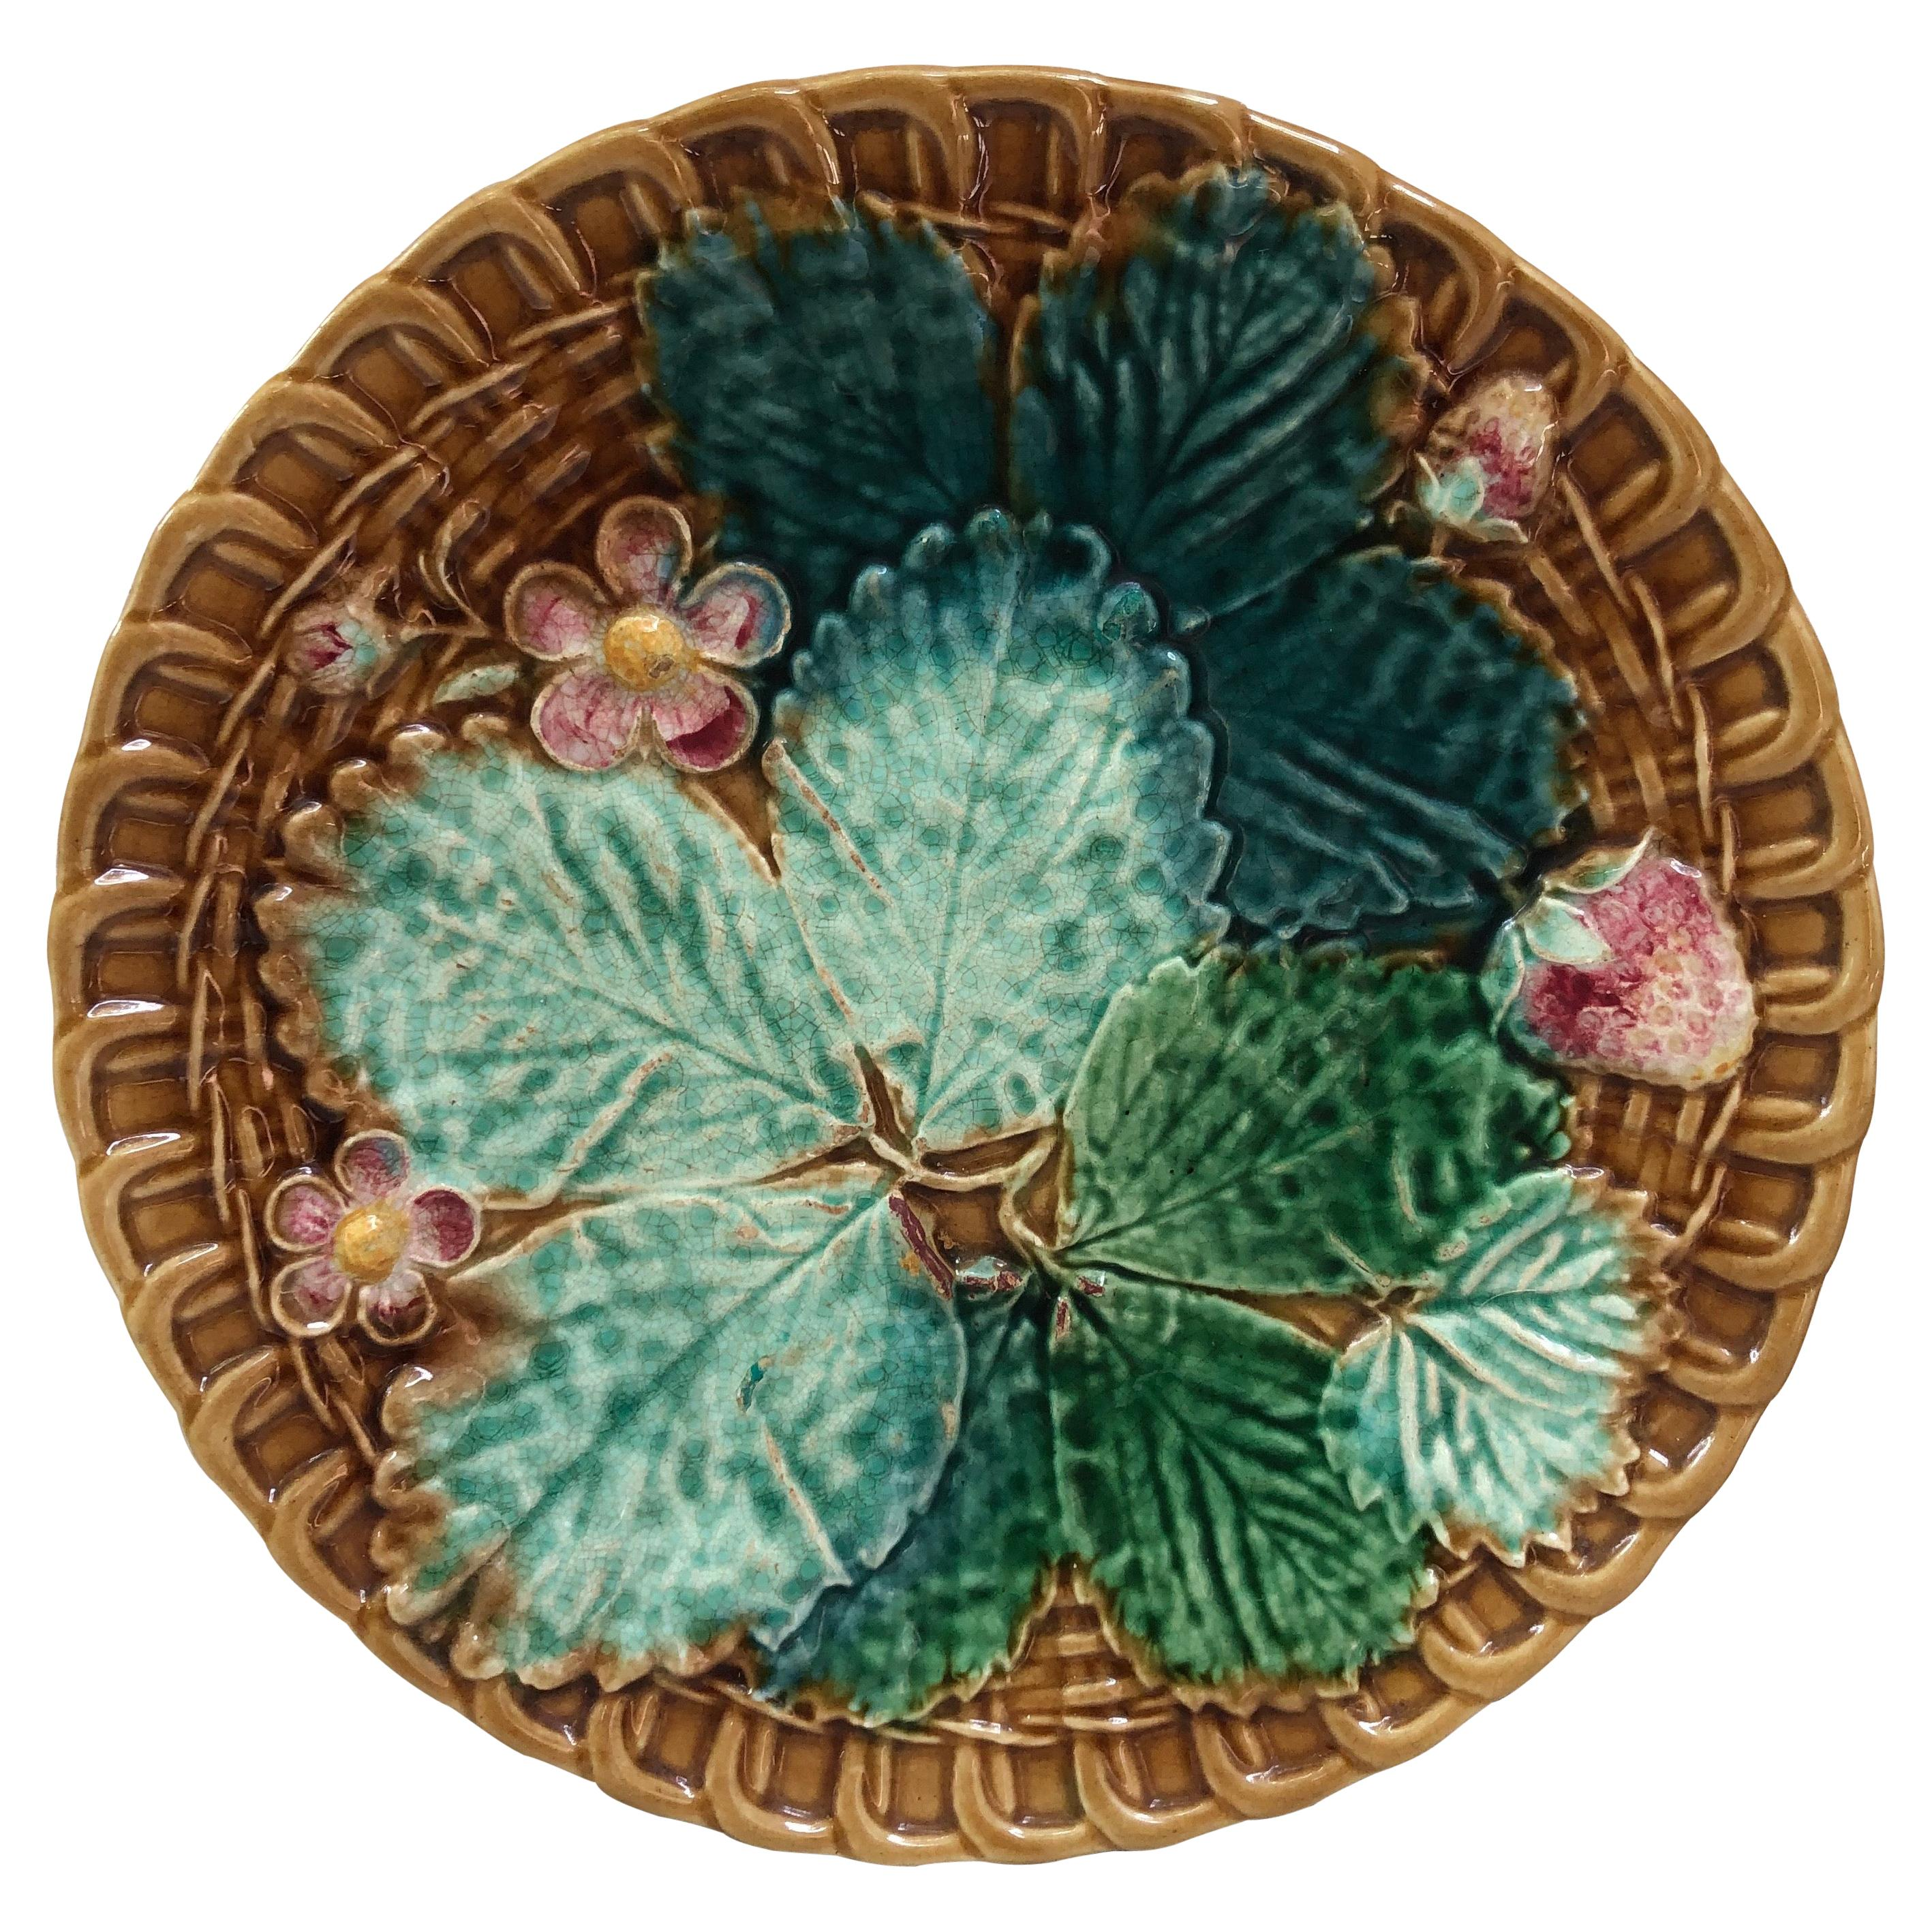 Majolica Flowers and Leaves Plate Clairefontaine, circa 1890